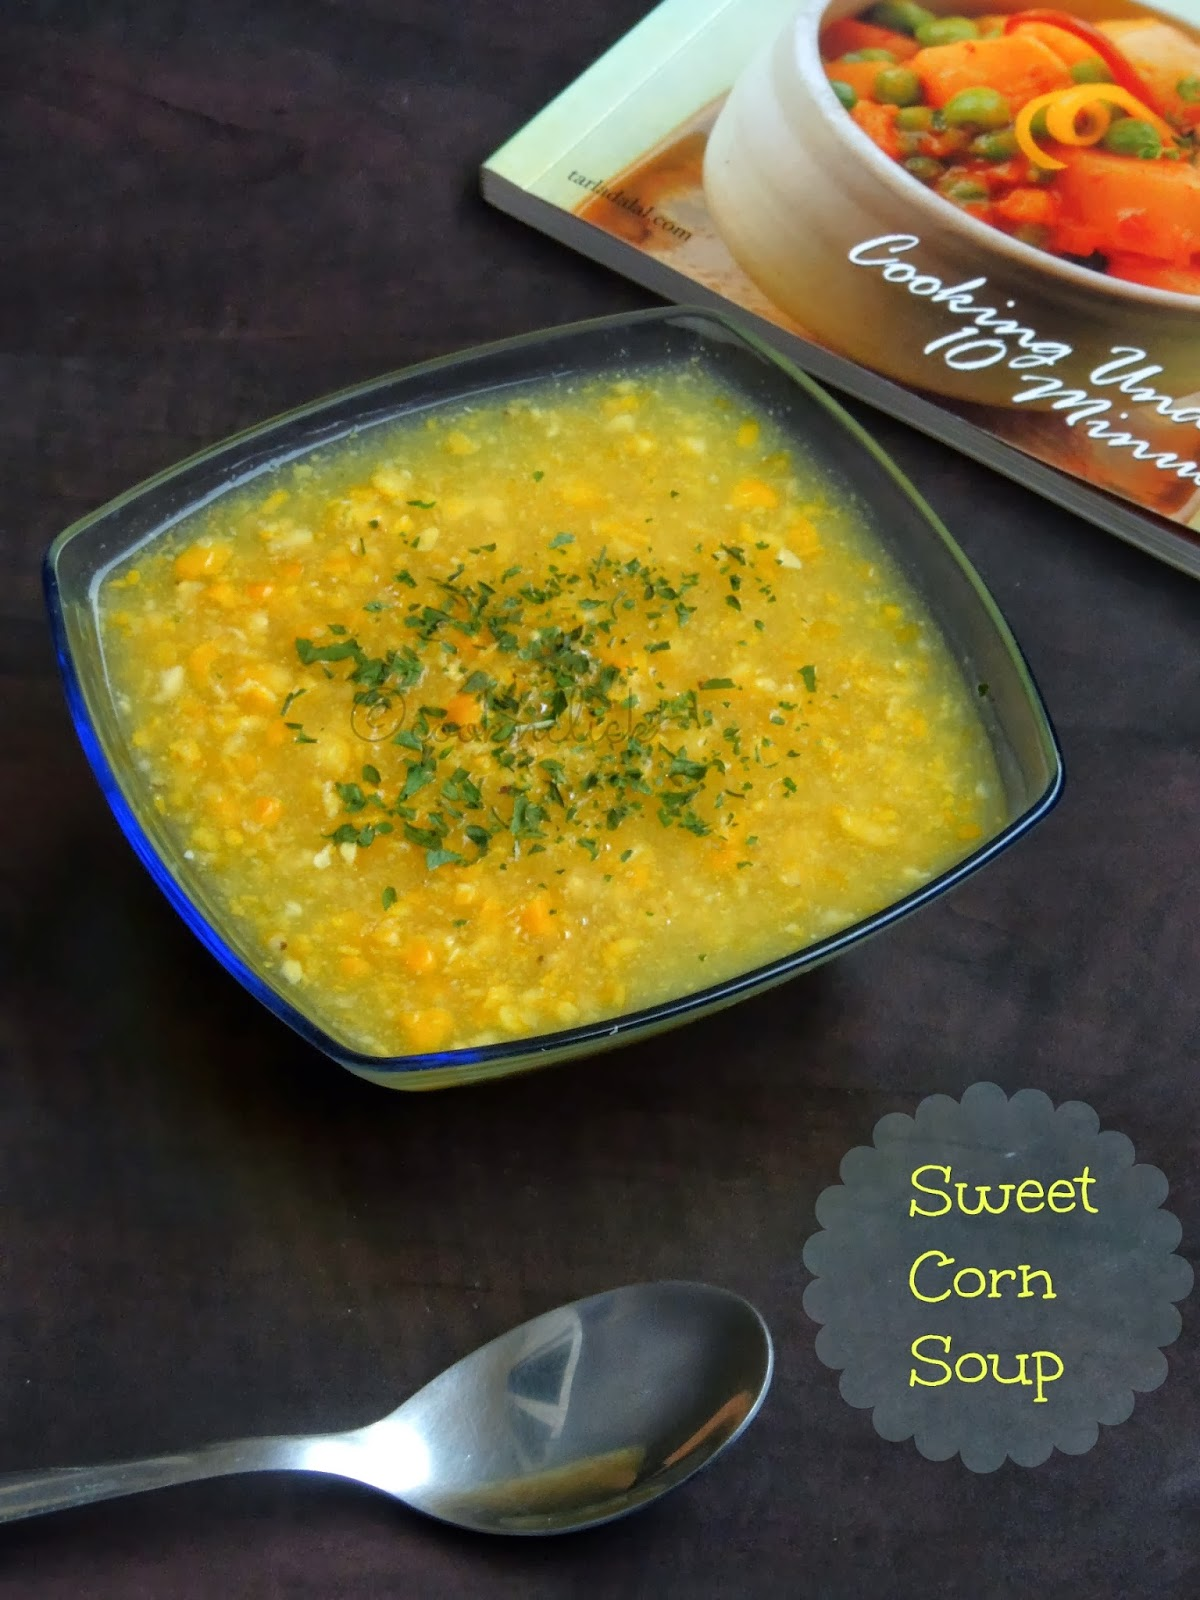 Easy+Sweet+Corn+Soup,+Sweet+Corn+Soup.jpg